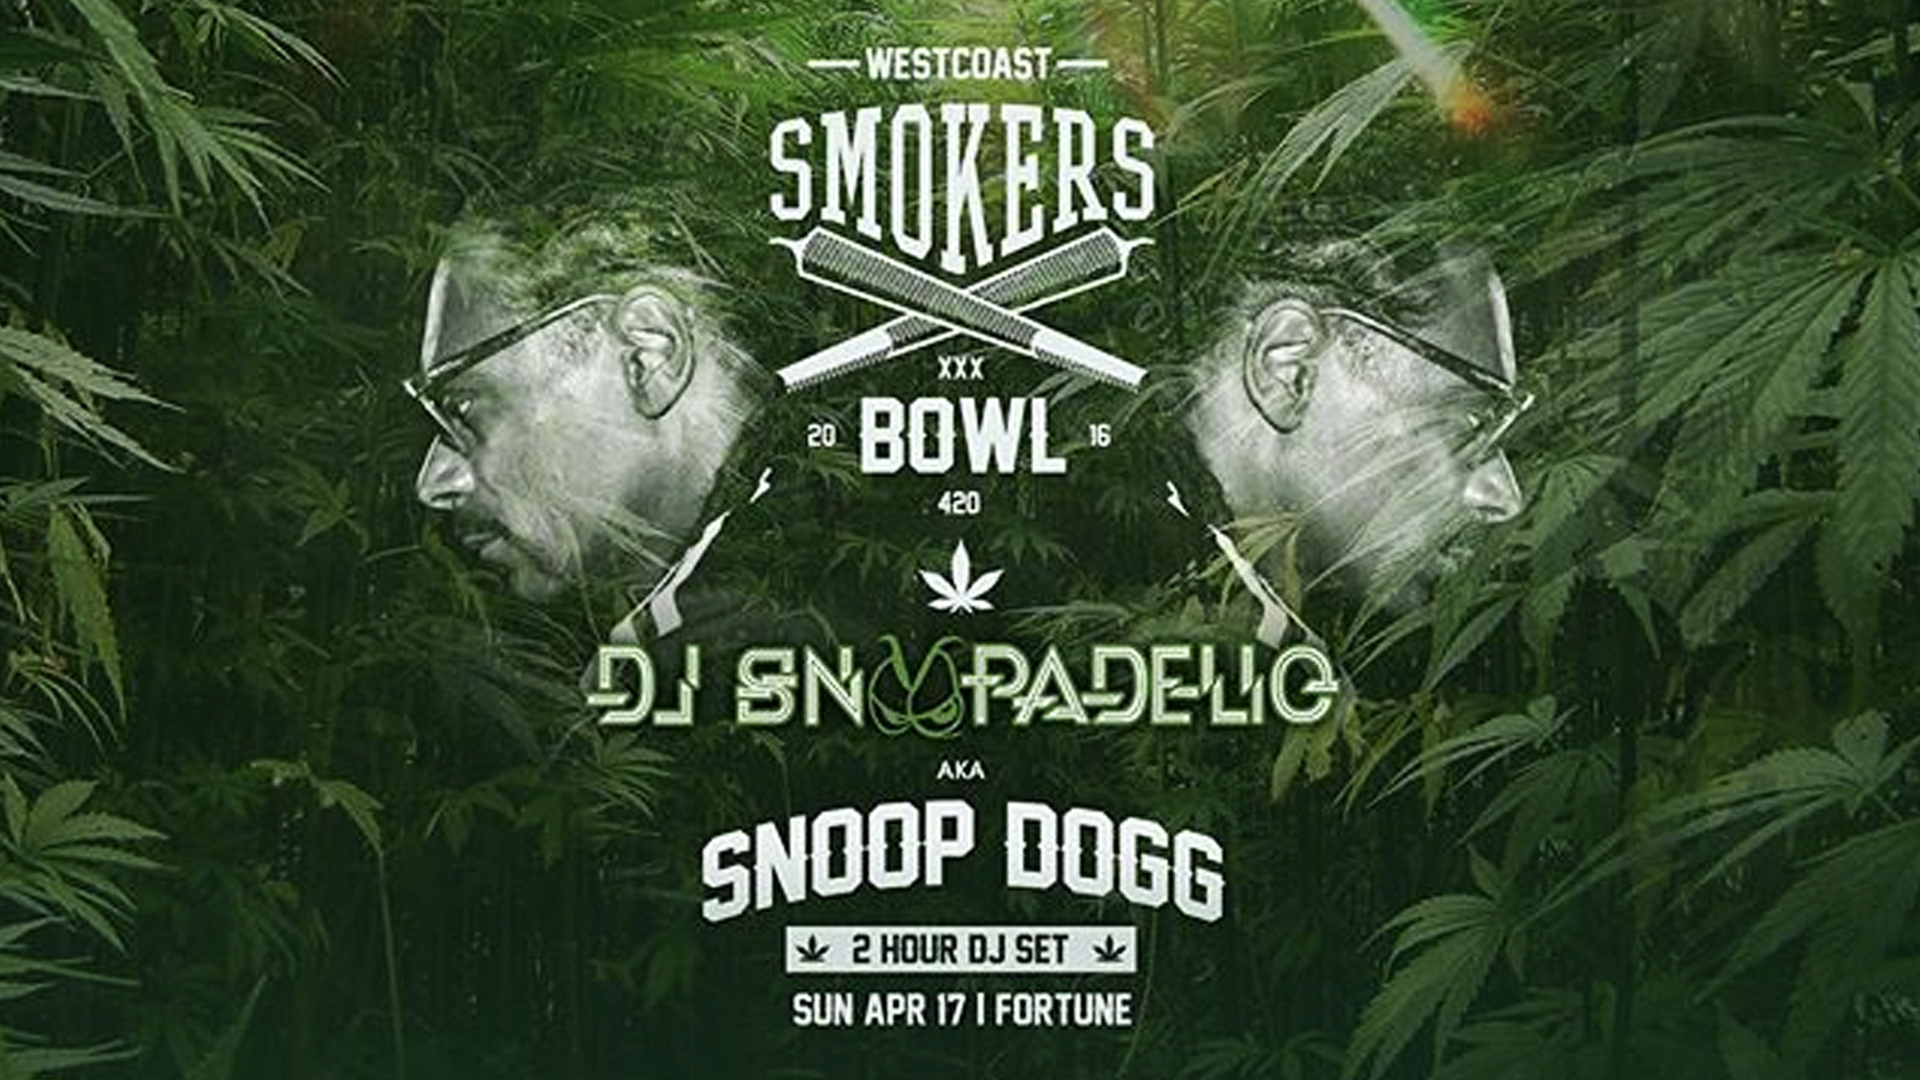 Westcoast Smokers Bowl